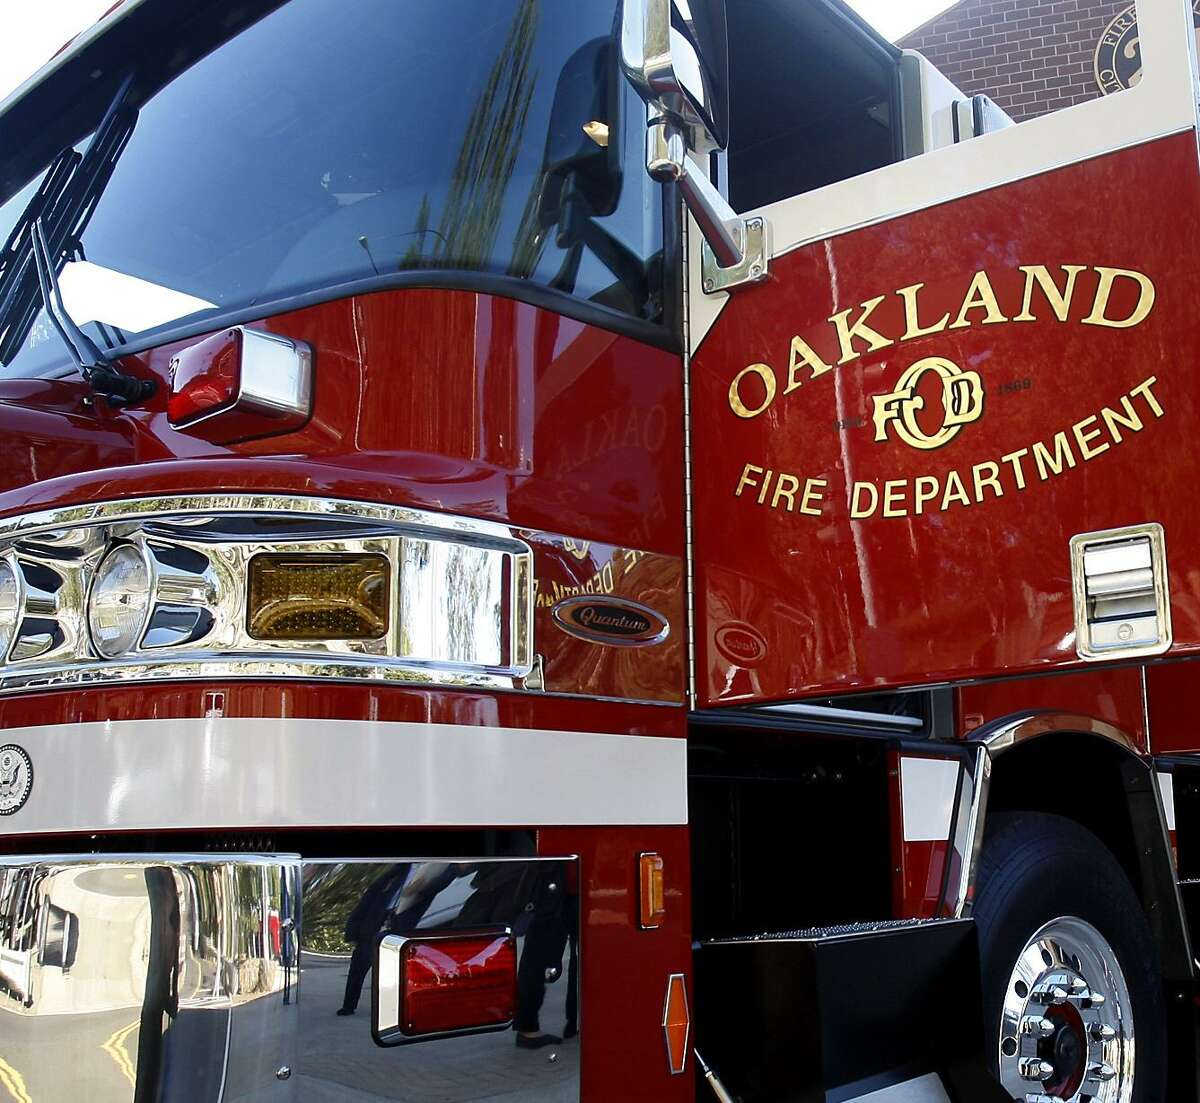 This file photograph shows an Oakland Fire Department engine outside of a fire station in Oakland.